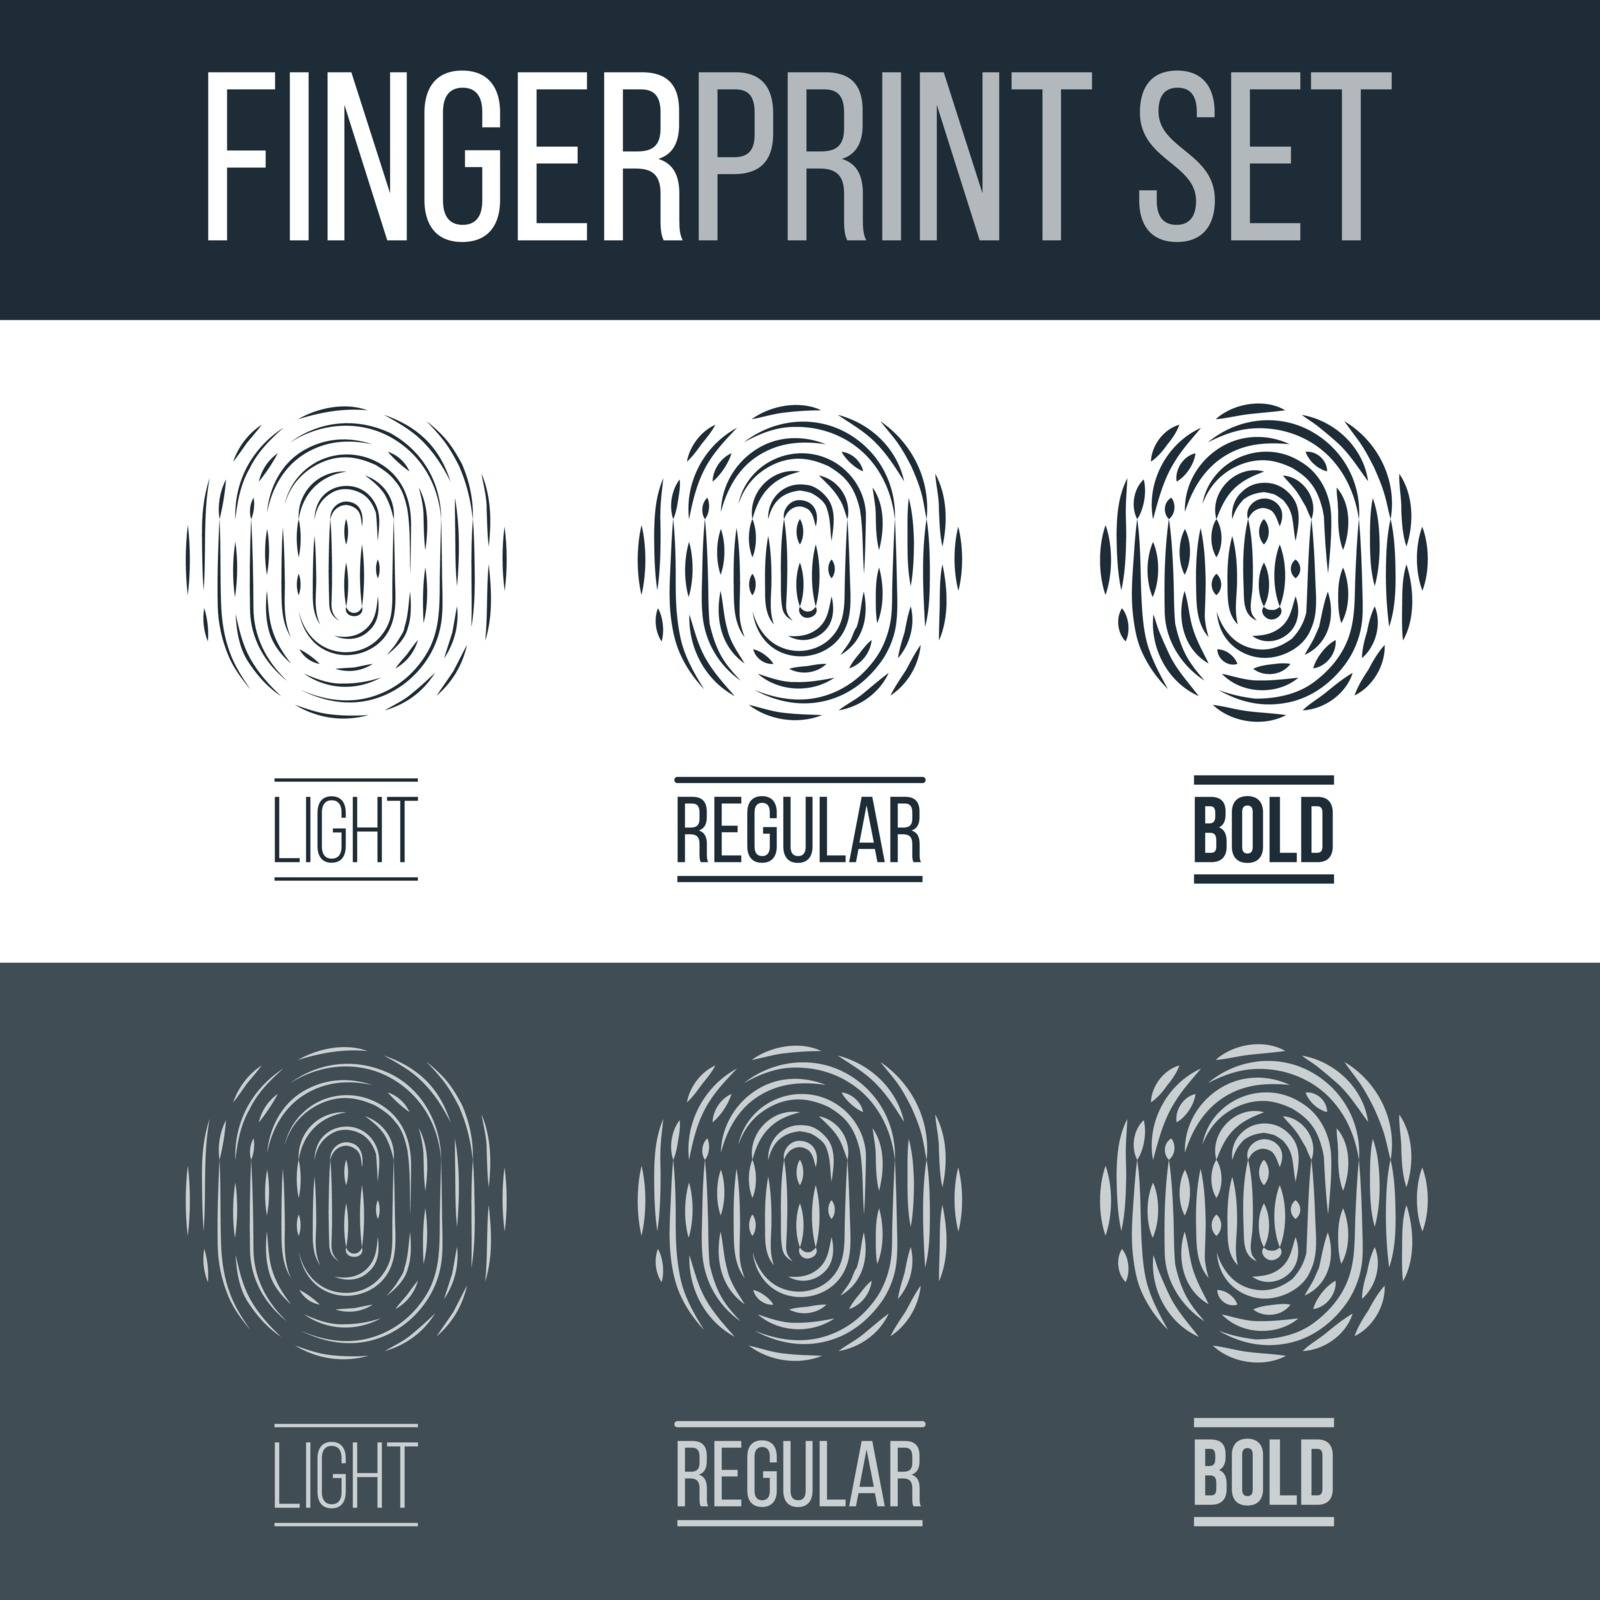 Abstract Biometric Fingerprint Icons Set, Sci-Fi Future Identification Authorization System on Dark and White Background